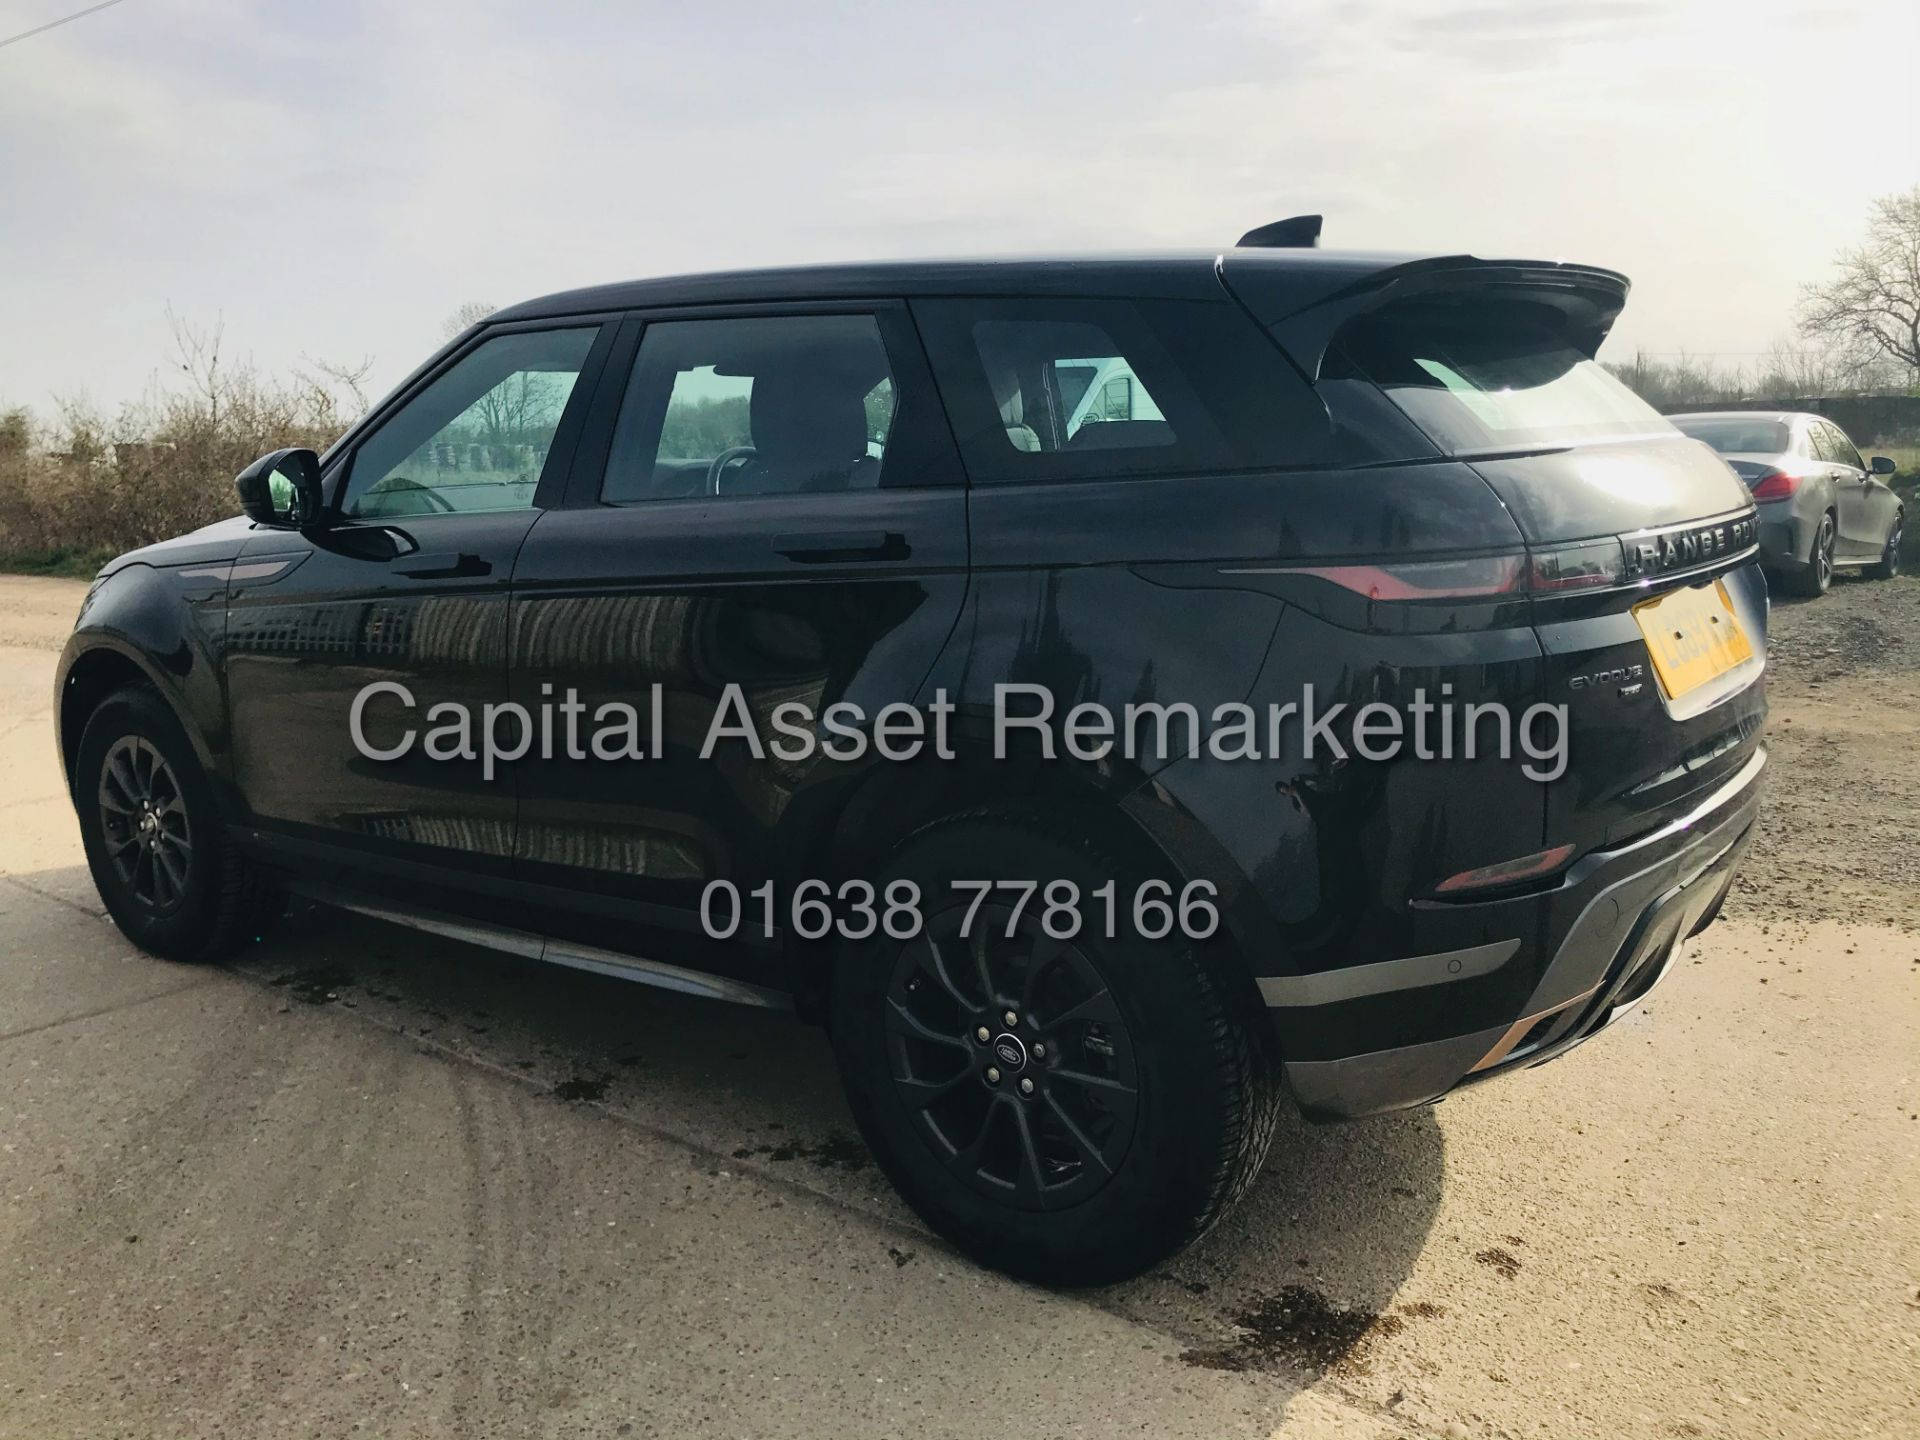 "(On Sale) RANGE ROVER EVOQUE R-DYNAMIC 2.0 D150 ""BLACK EDITION"" (2020) GREAT SPEC - ONLY 4500 MILES - Image 8 of 26"